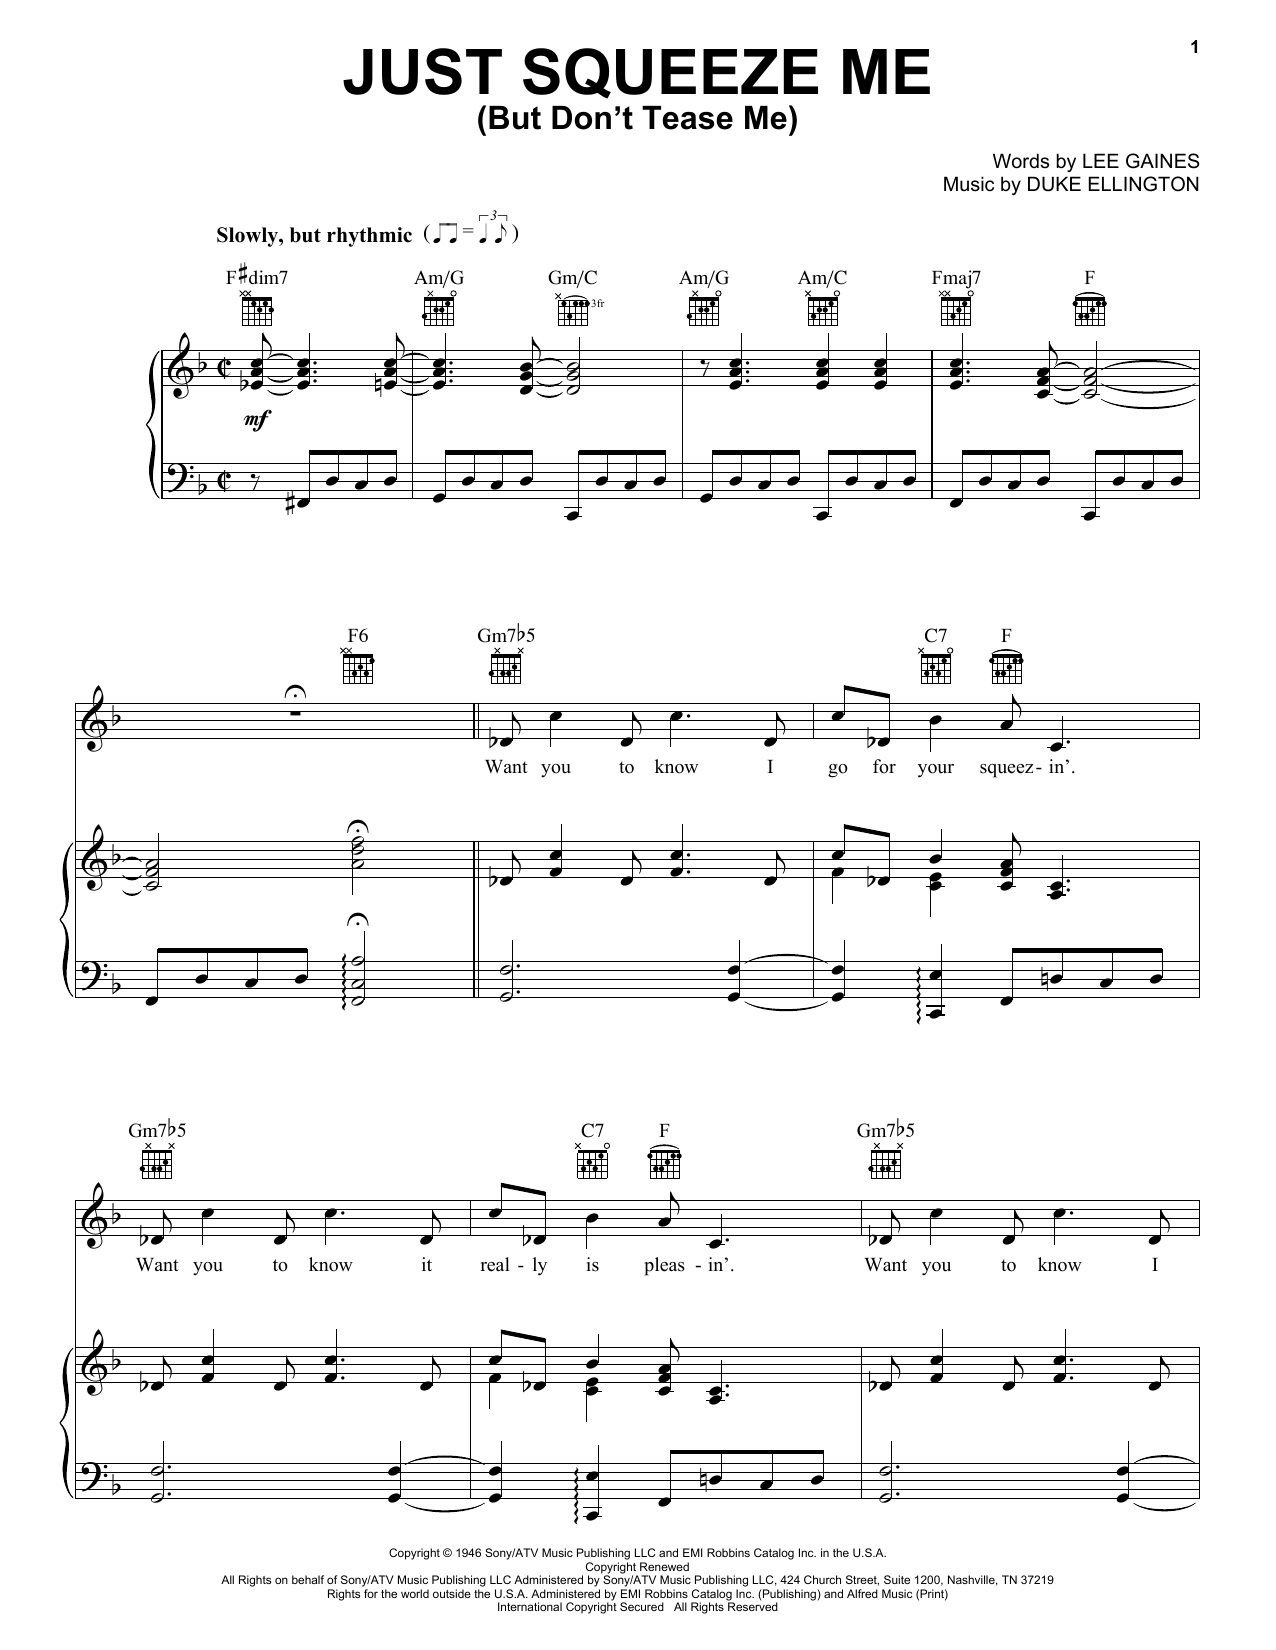 Duke Ellington Just Squeeze Me (But Don't Tease Me) sheet music preview music notes and score for Piano, Vocal & Guitar (Right-Hand Melody) including 4 page(s)